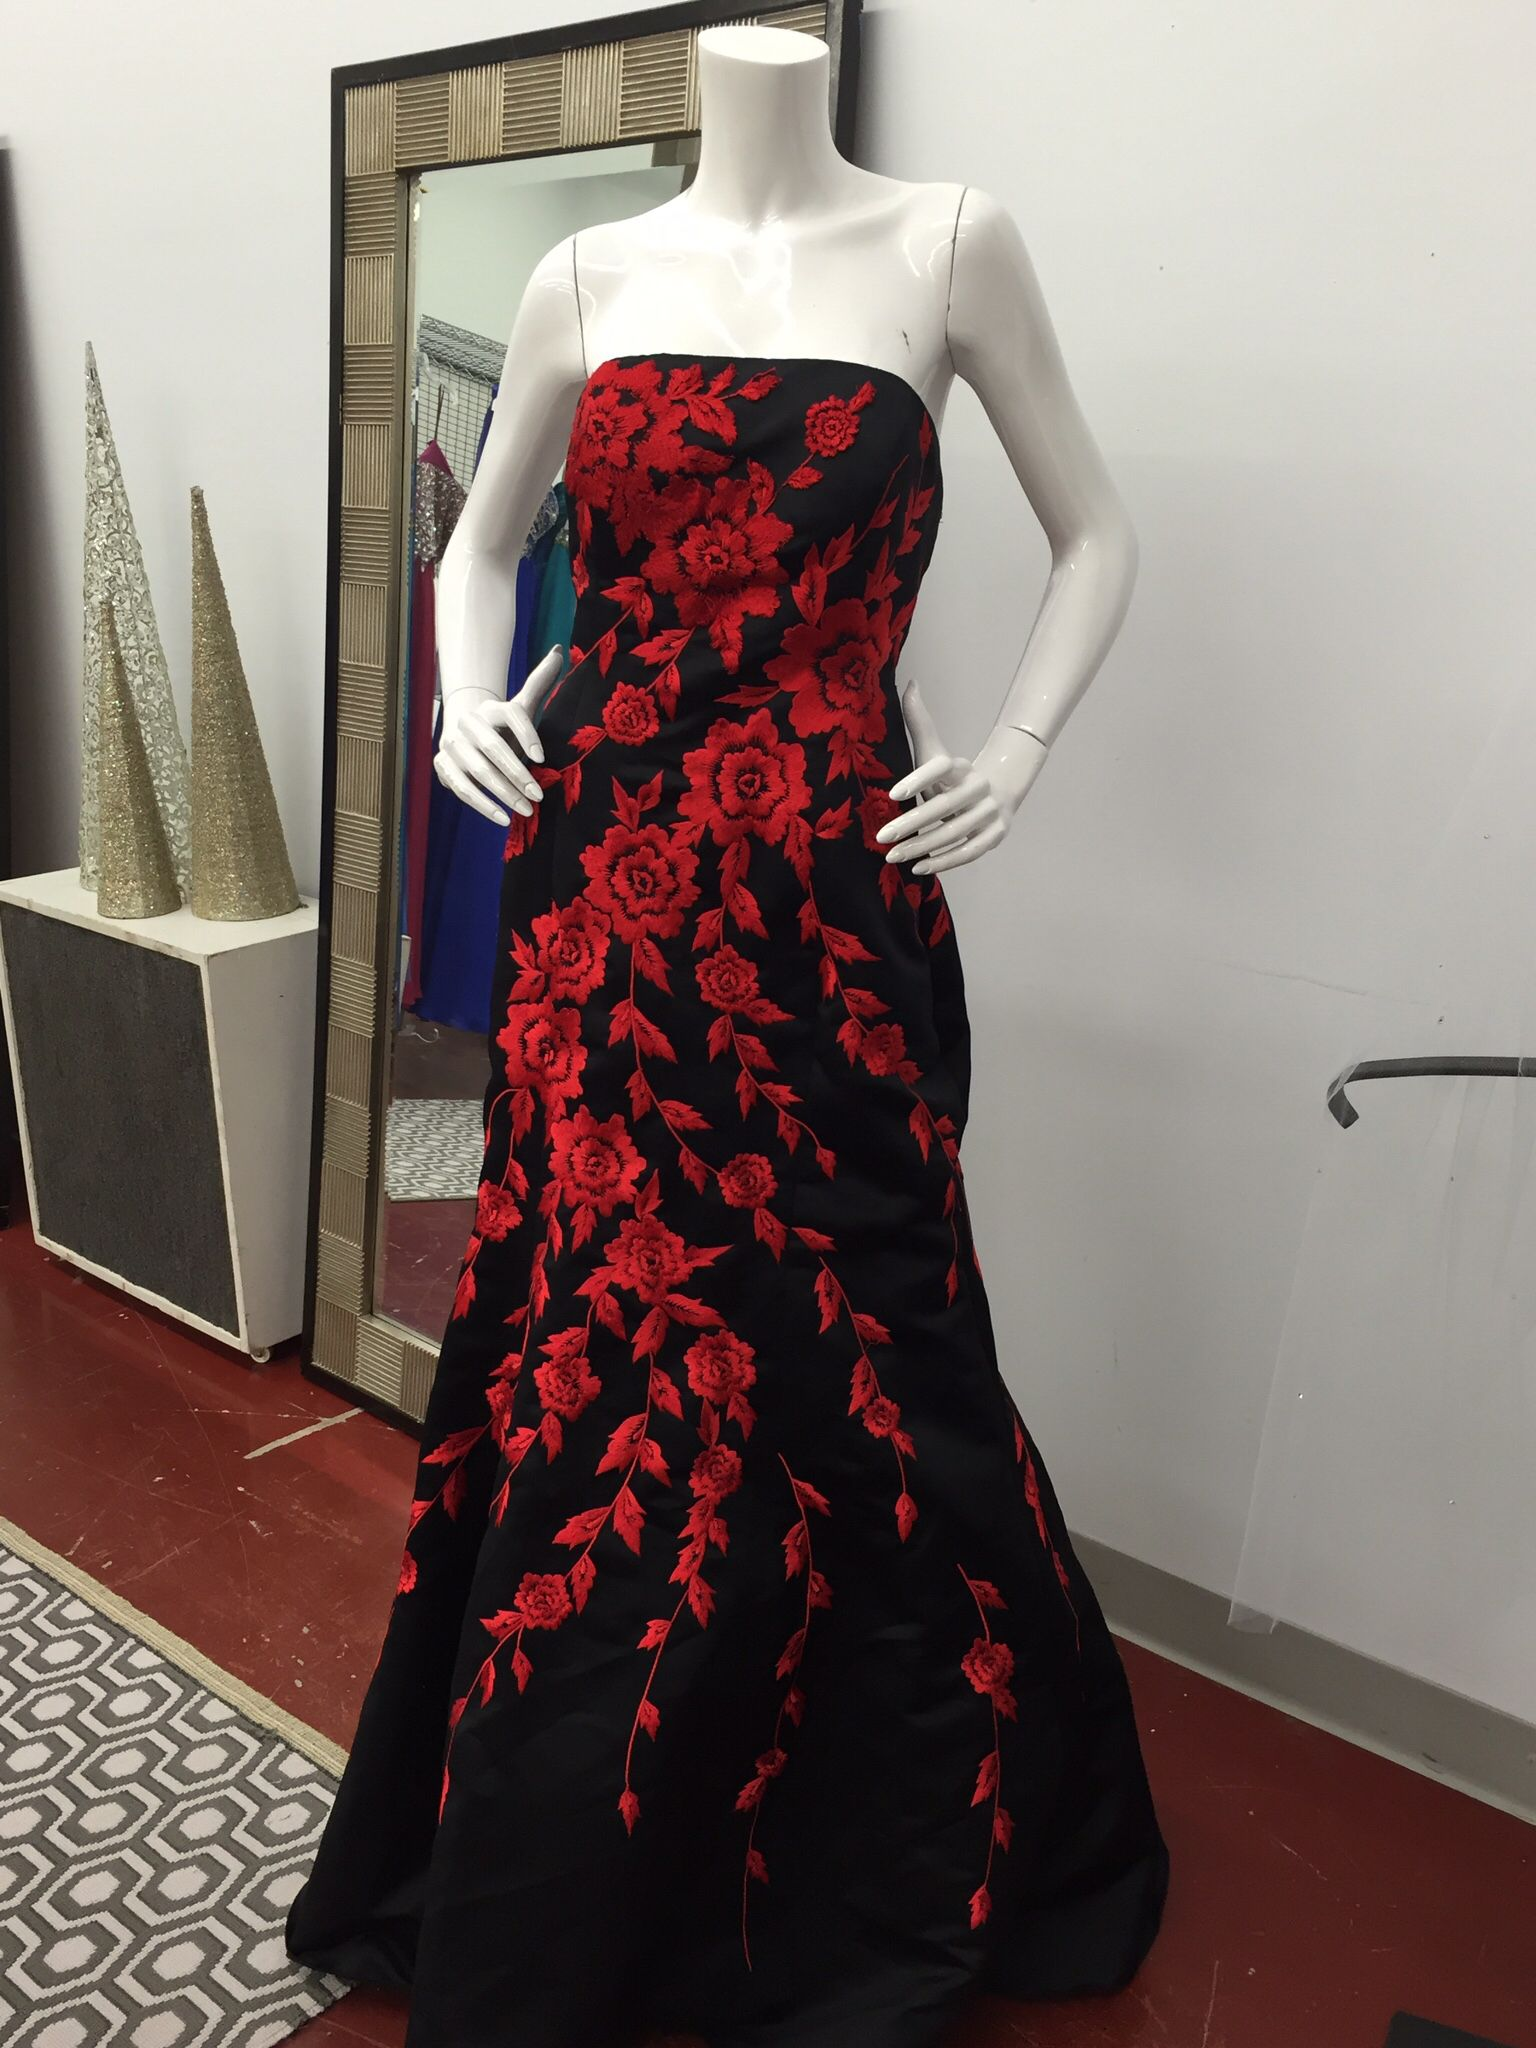 #black and #red #embroidered #corset back #prom #formal #dress #size12 #consigned @consignmentbridalprom